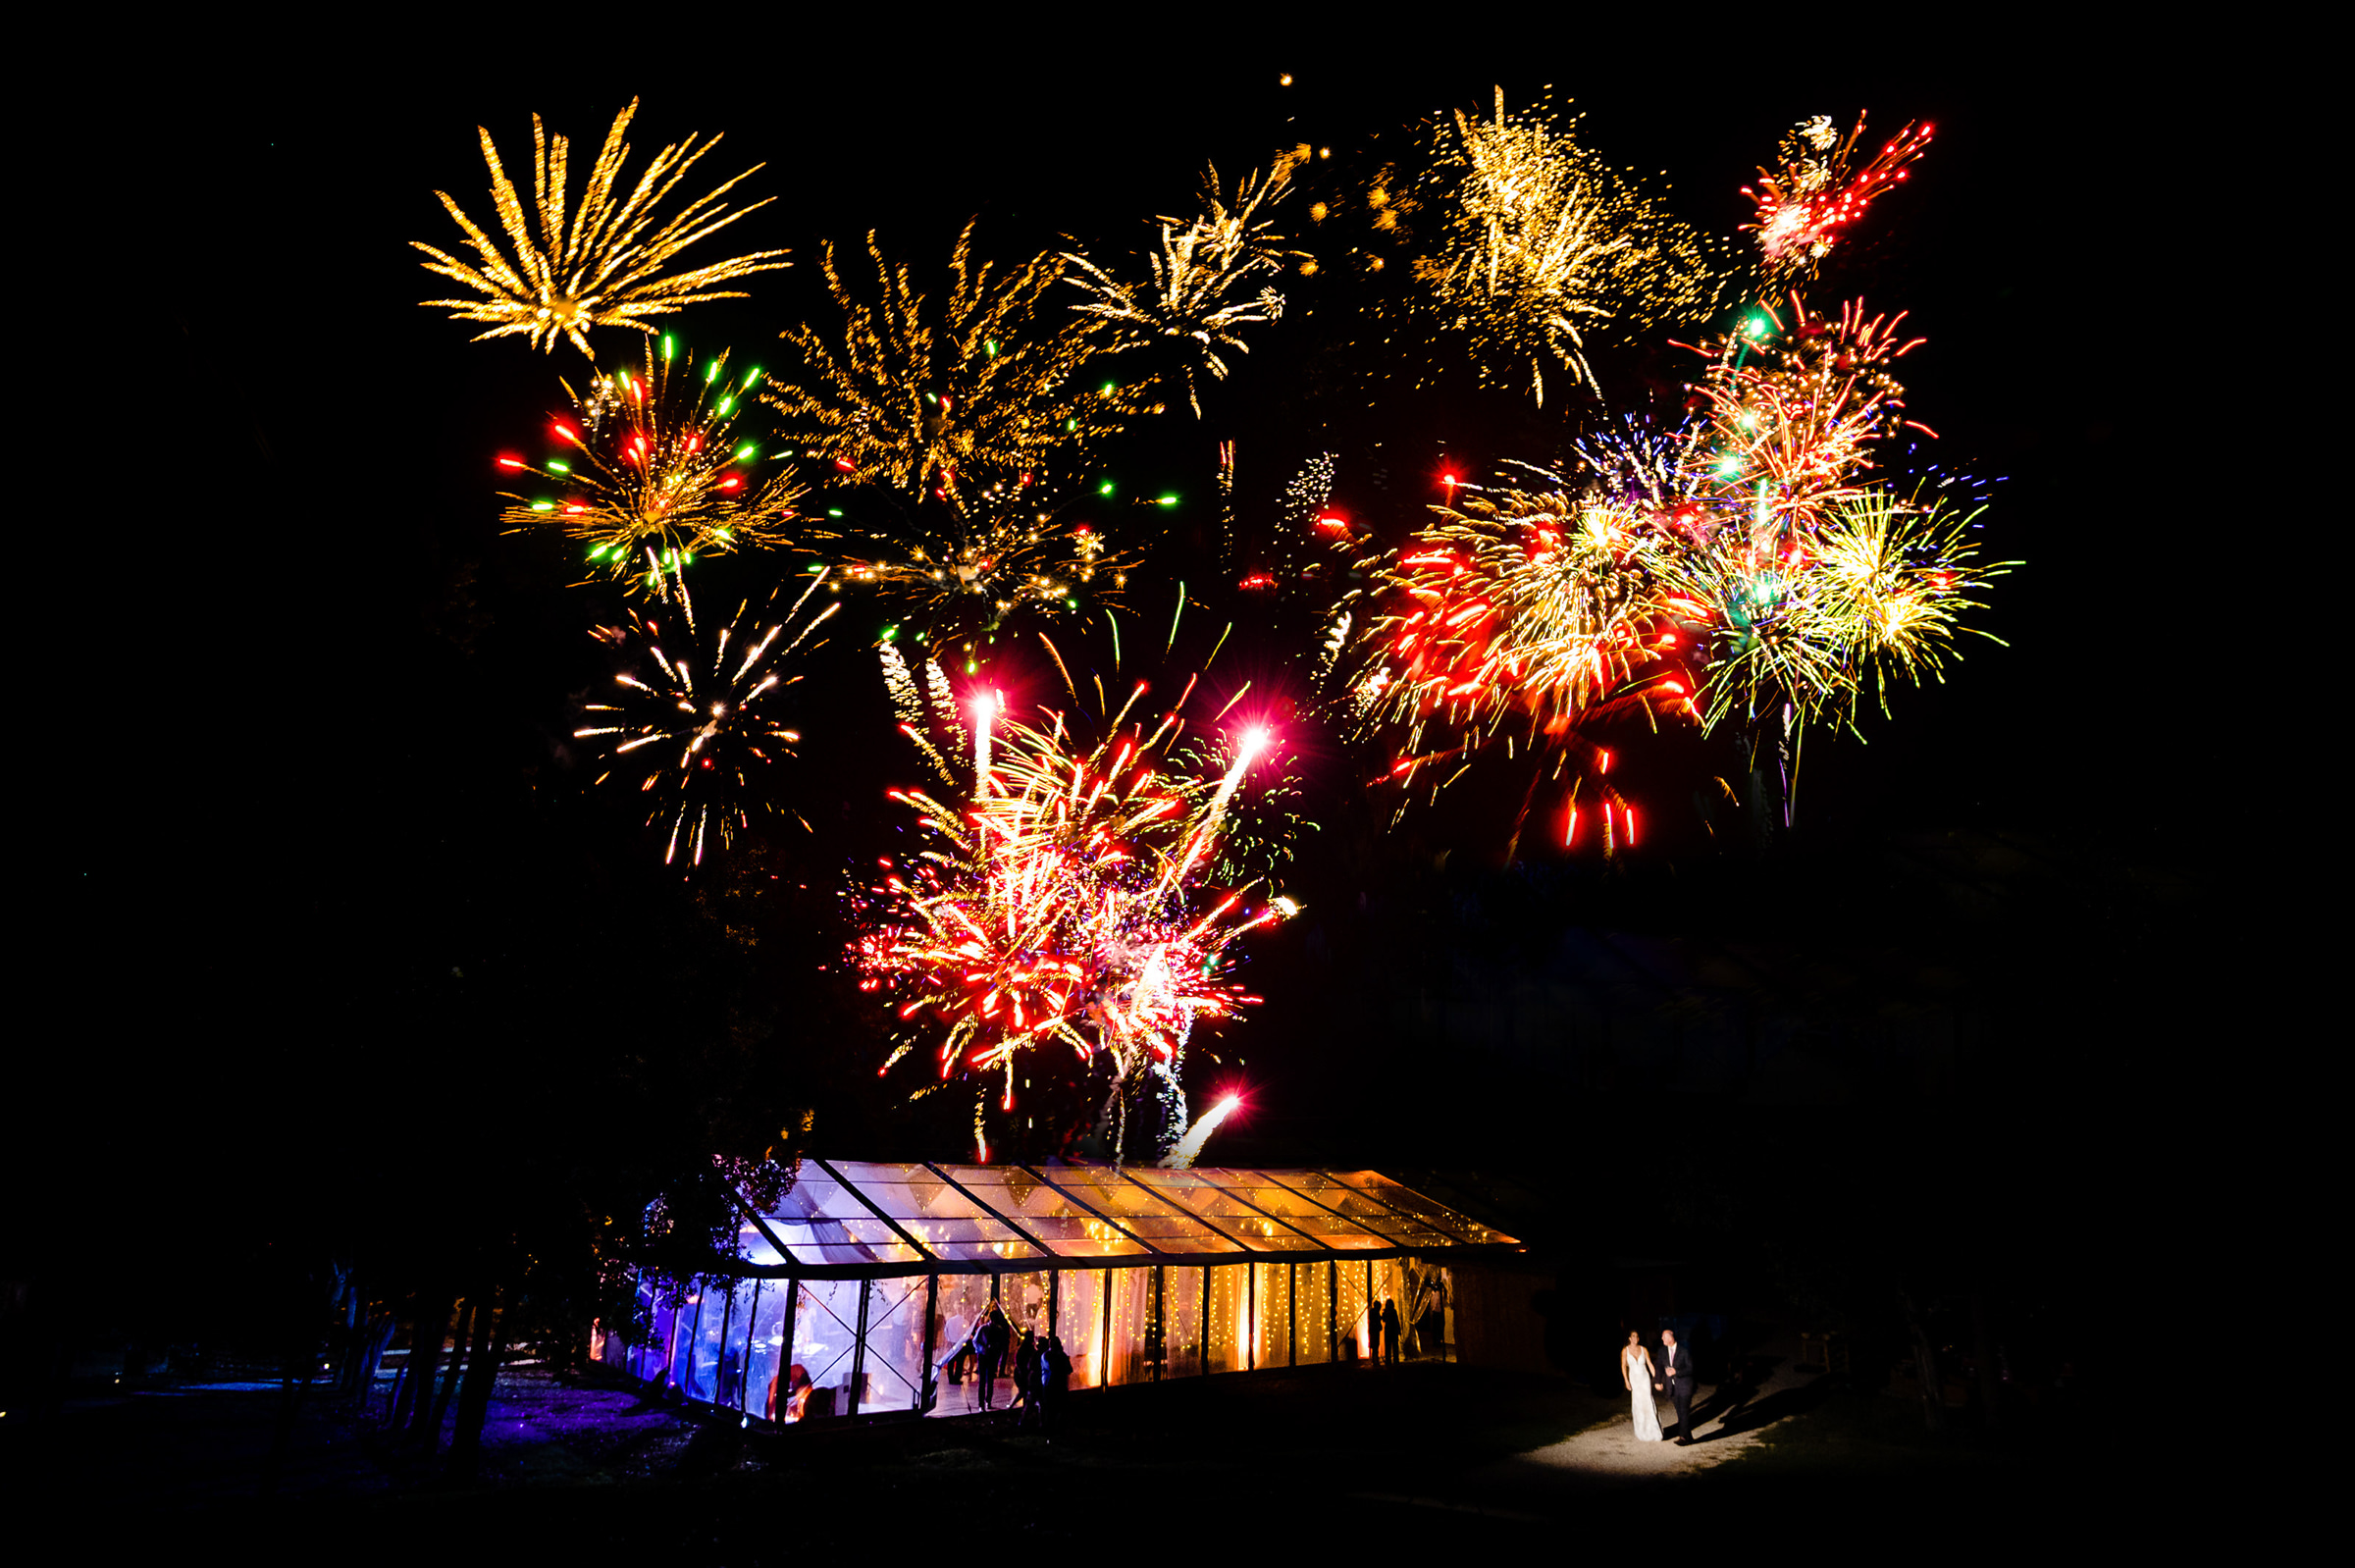 Colorful fireworks over greenhouse with couple in spotlight - photo by Moore Photography